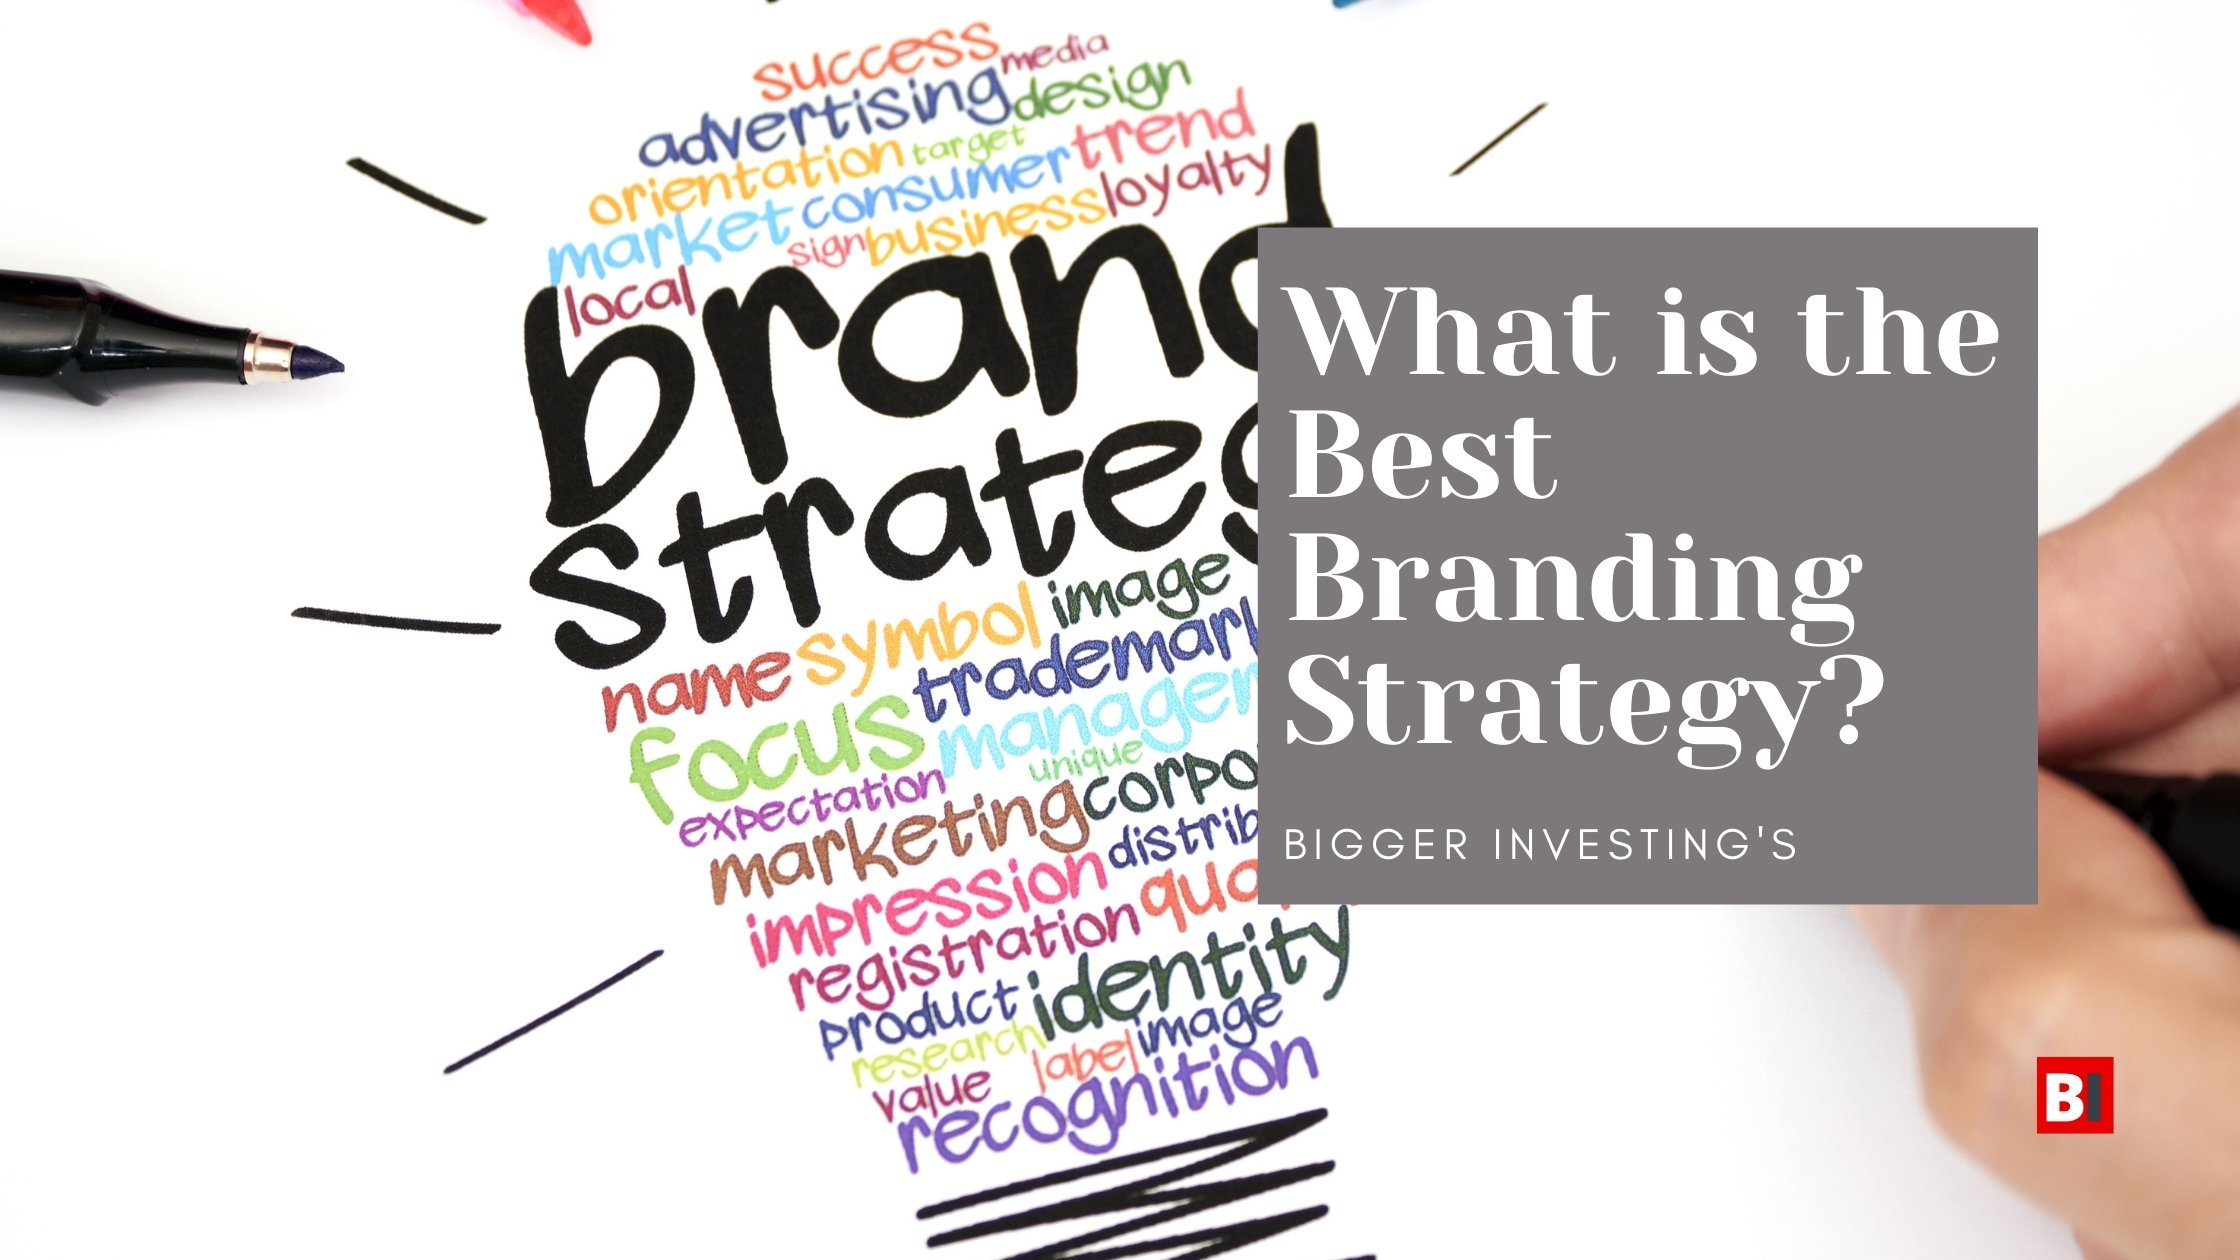 What is the Best Branding Strategy?